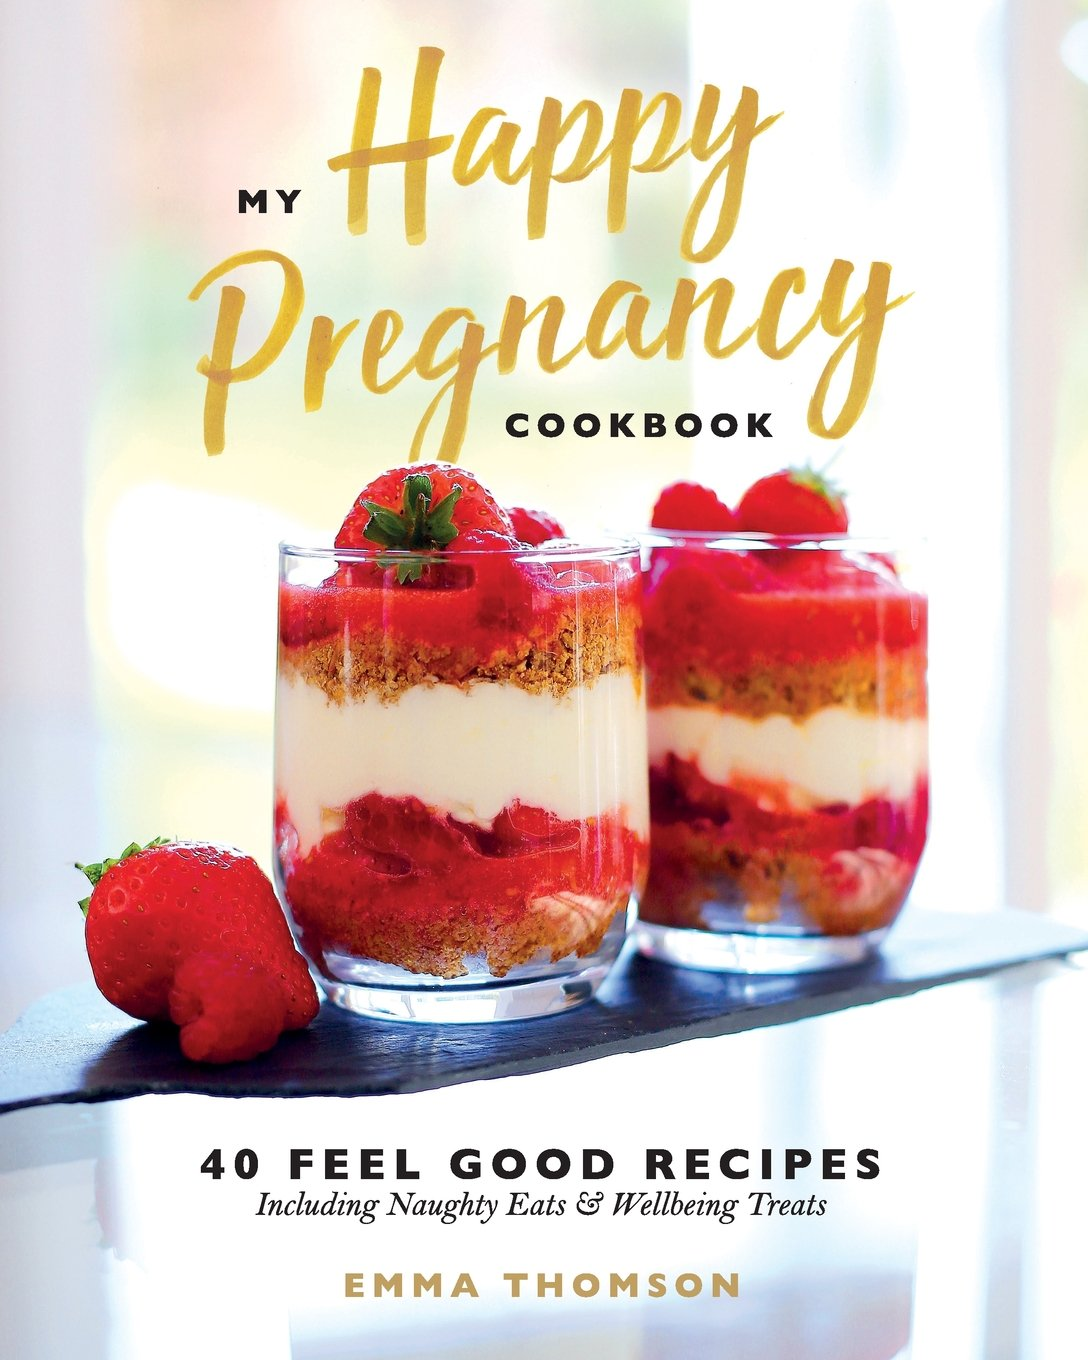 Download My Happy Pregnancy Cook Book: 40 Feel Good Recipes Including Naughty Eats and Wellbeing Treats pdf epub